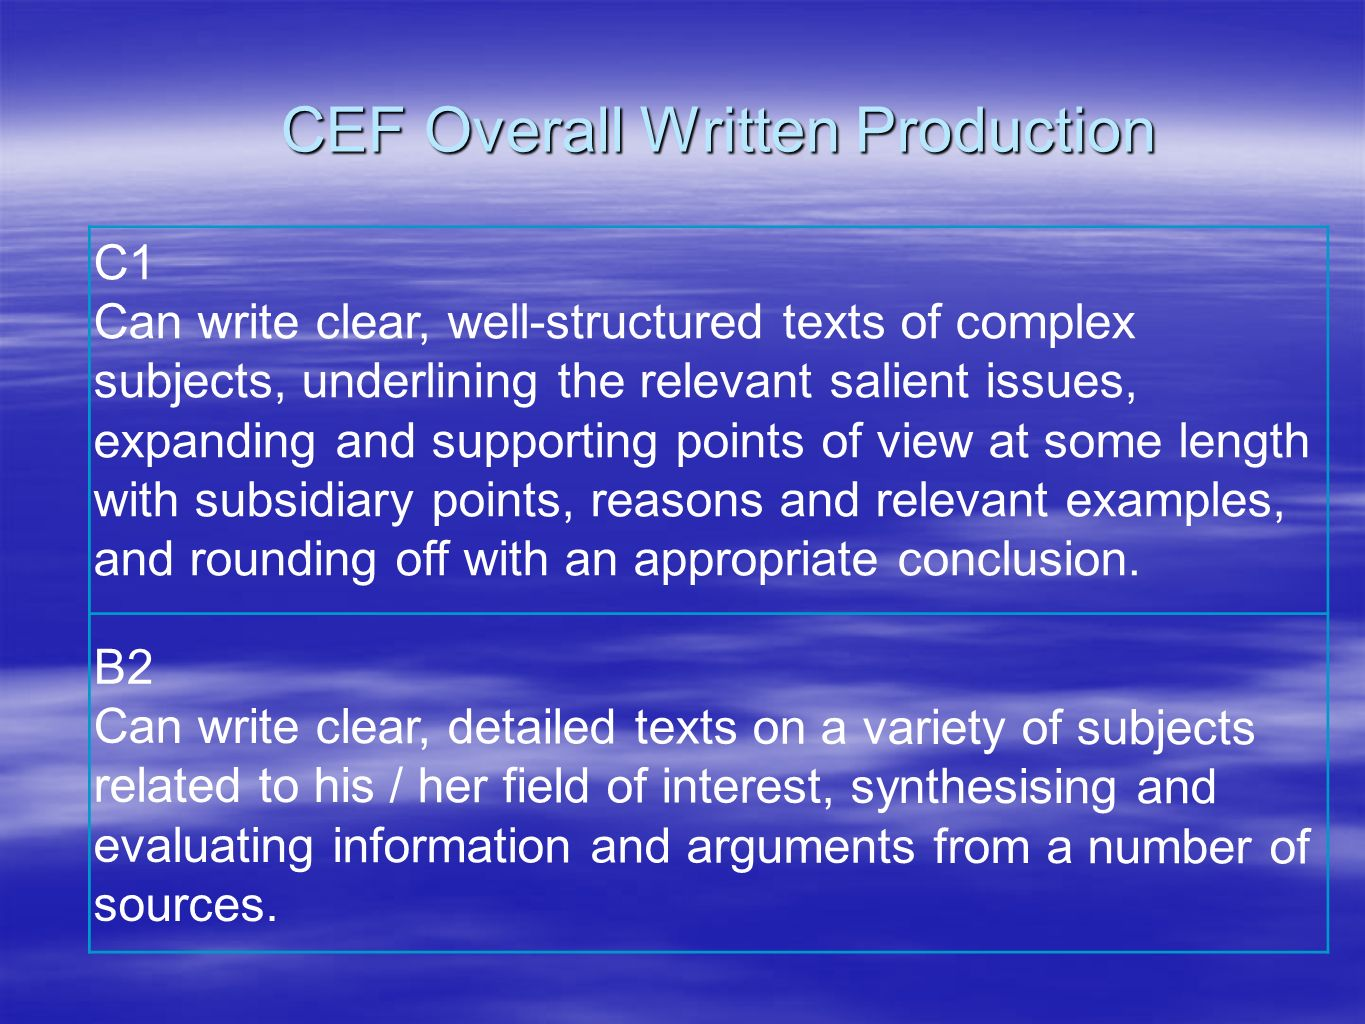 CEF Overall Written Production B2 Can write clear, detailed texts on a variety of subjects related to his / her field of interest, synthesising and ev